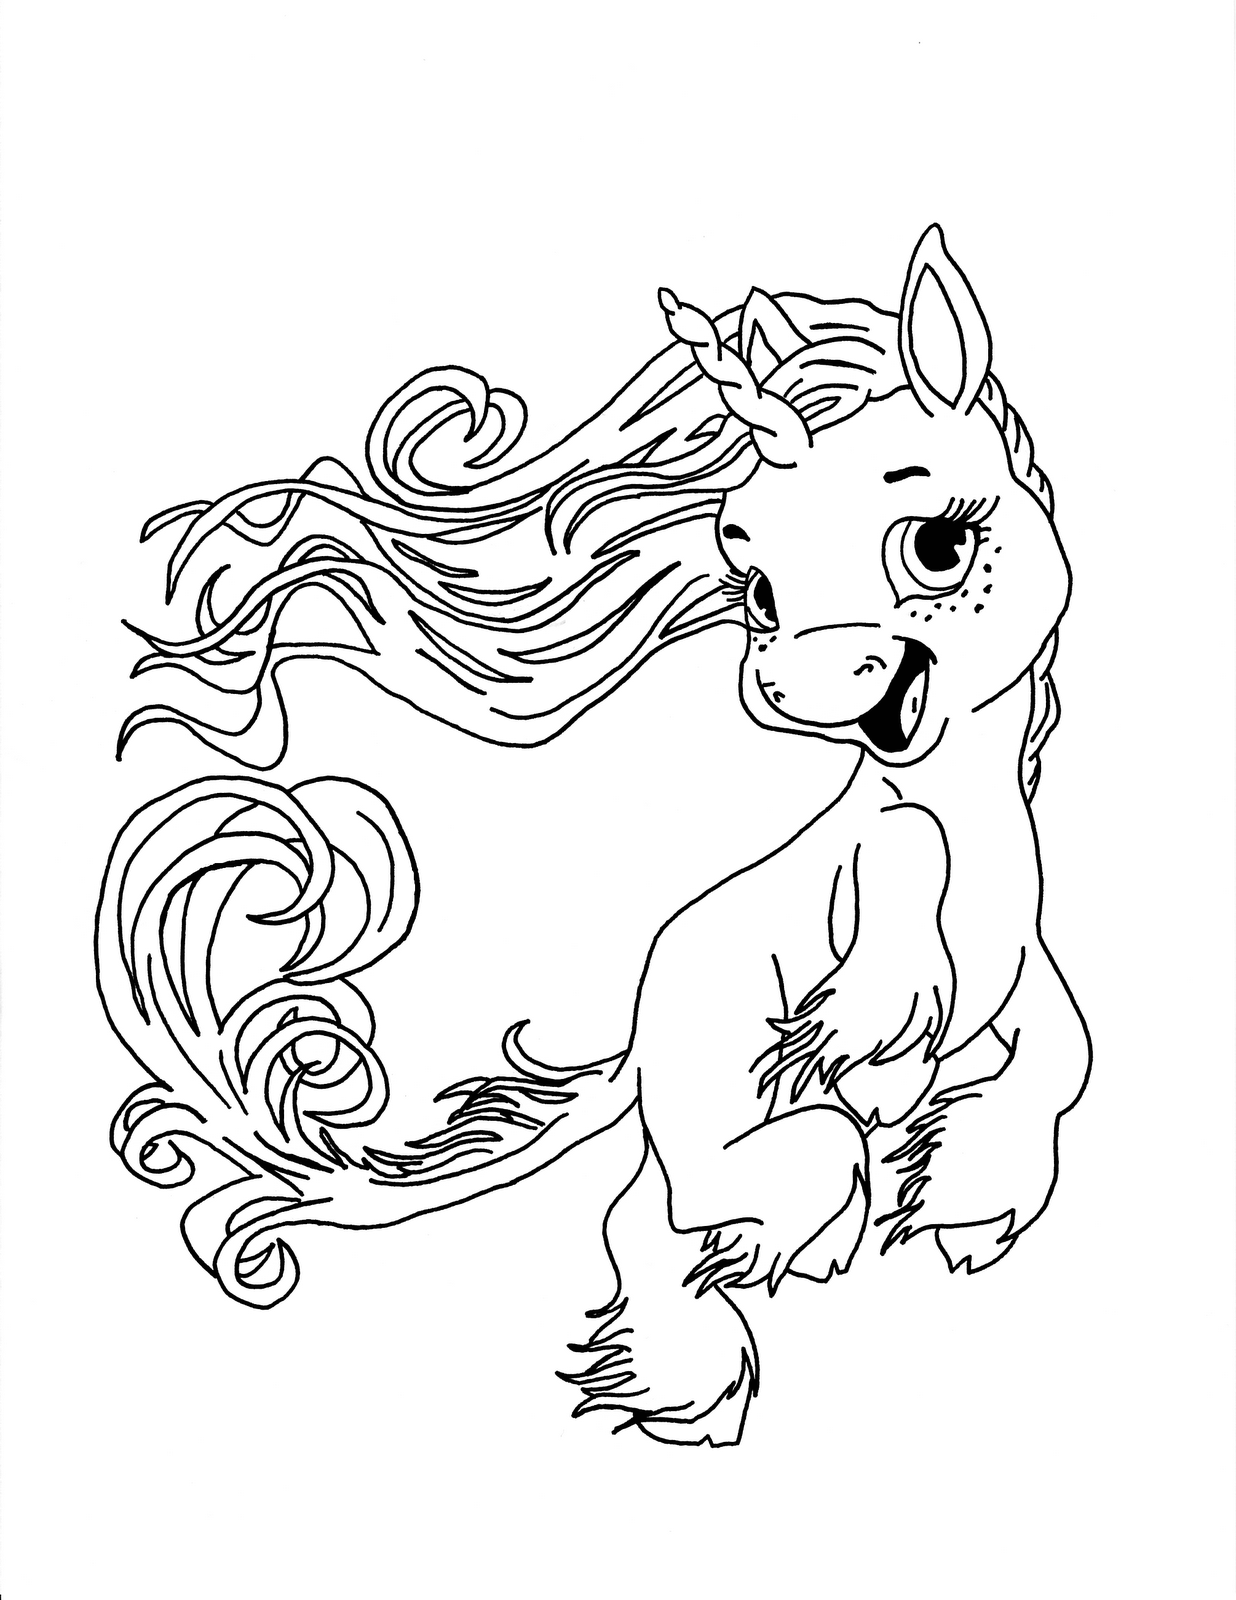 unicorn color pages for children activity shelter - Coloring Pages Unicorns Printable